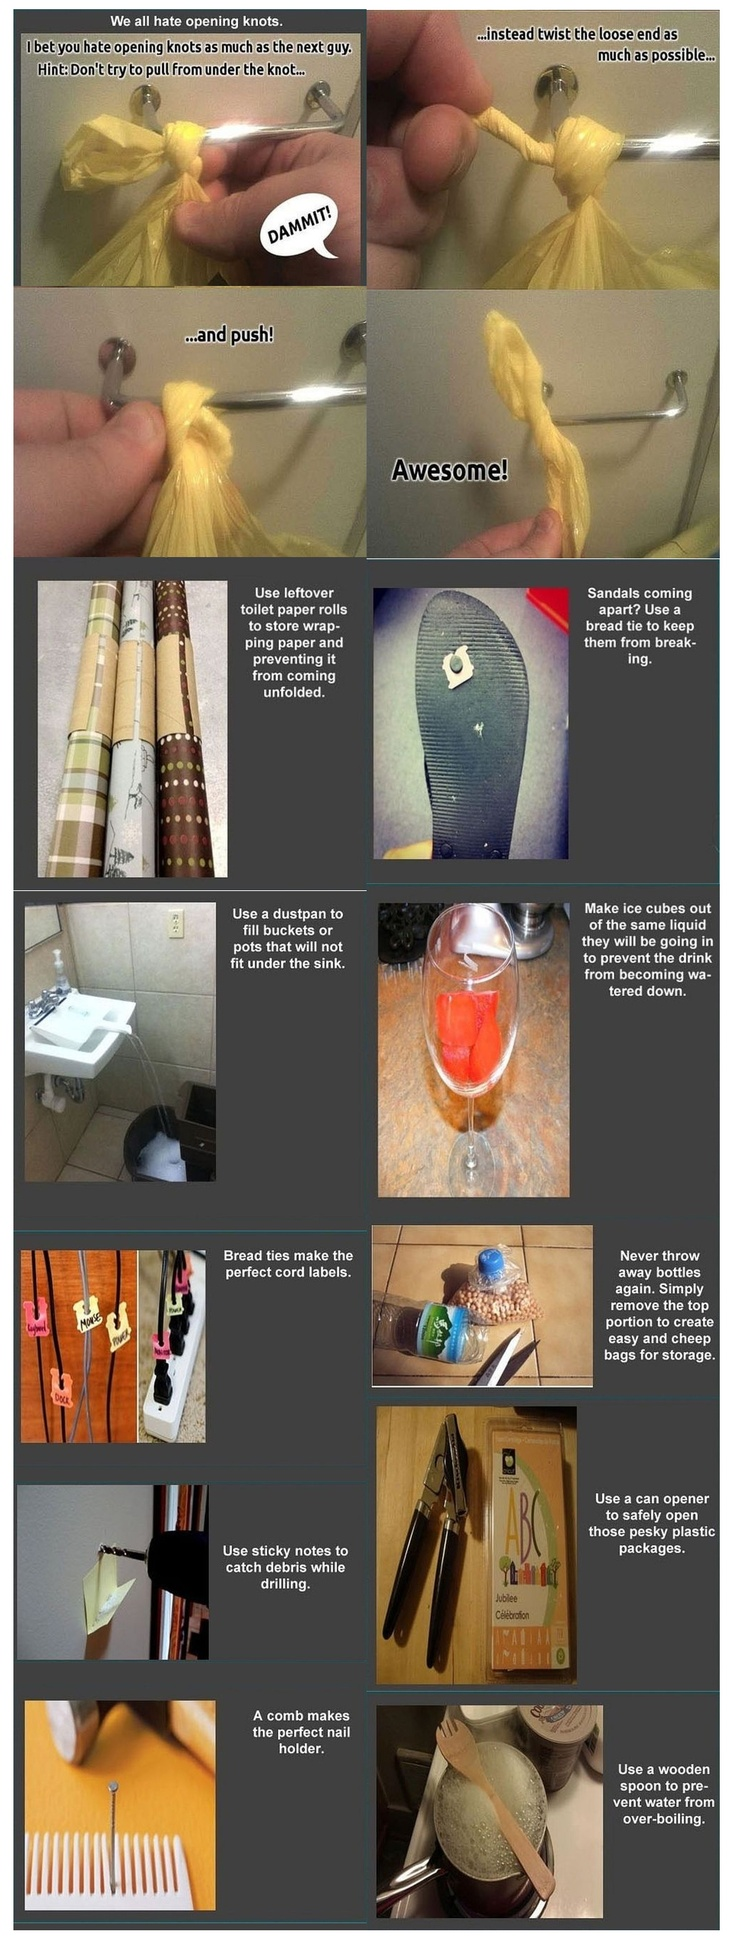 Most of these are new to me! Excellent life hacks (via Tumblr: http://thebogonoslo.tumblr.com/post/20473311074/life-hacks)